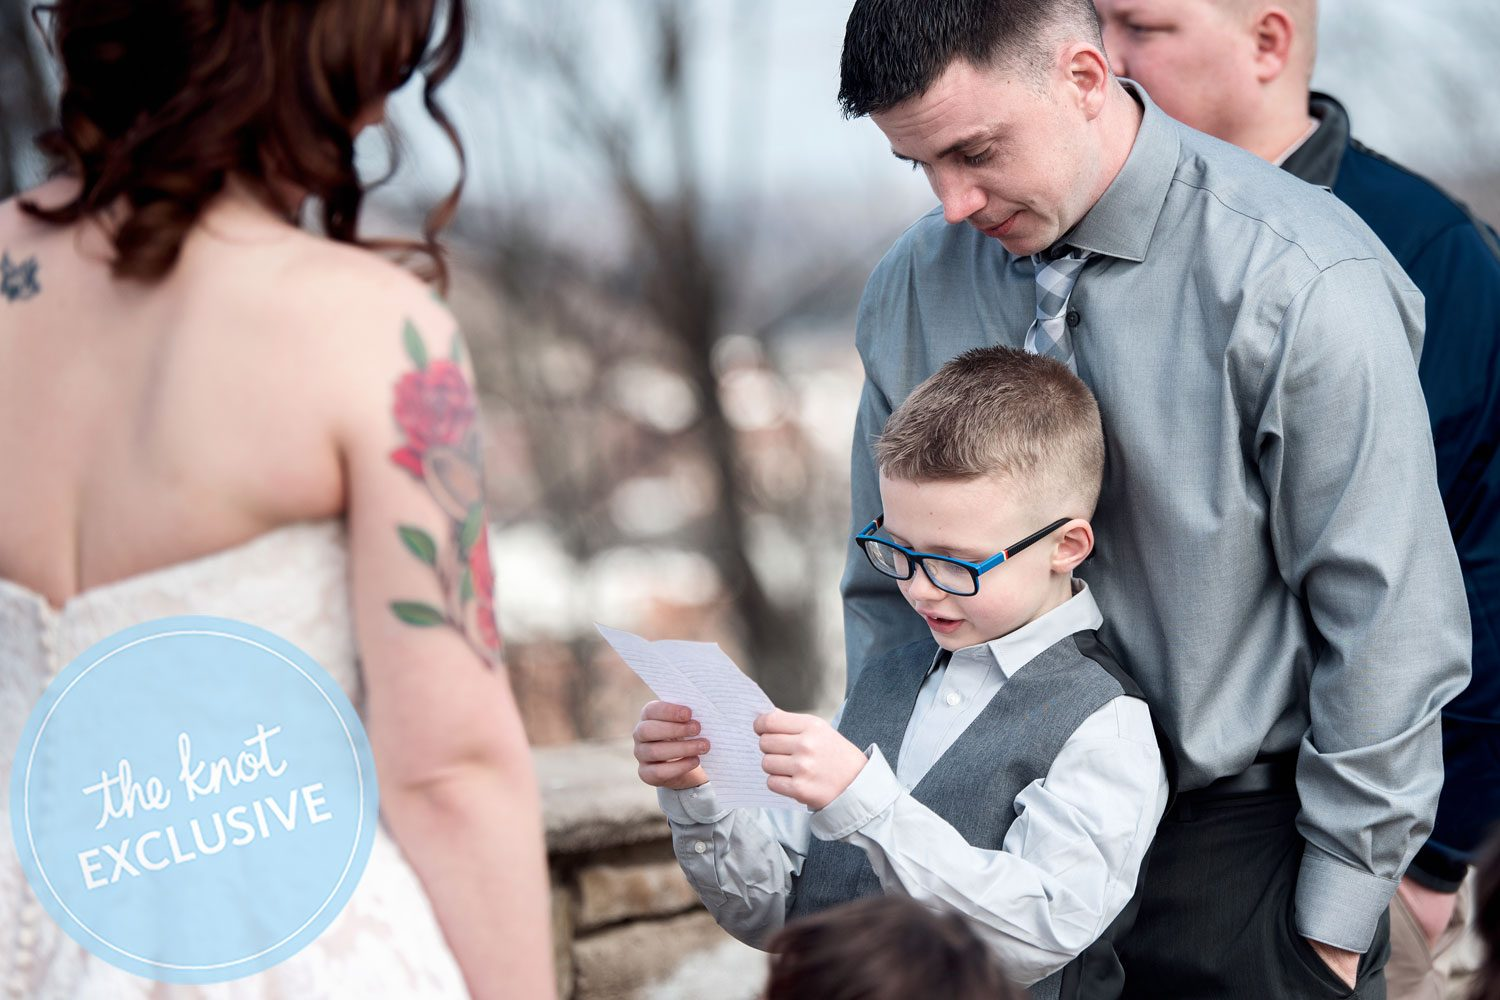 Grooms Son 7 Adorably Finishes Vows After His Dad Breaks Into Tears